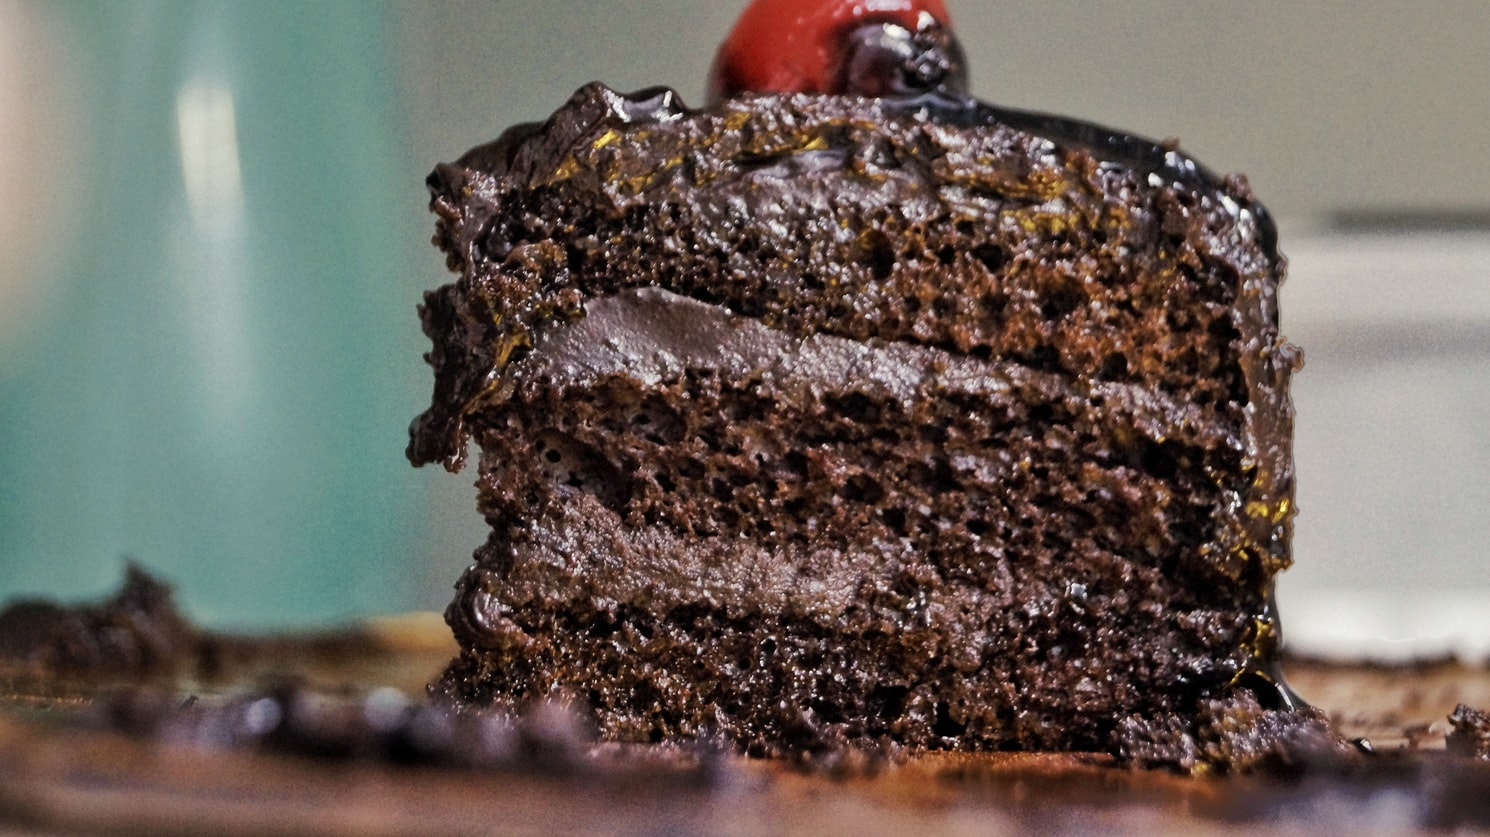 How To Make Cannabis-Infused Cake photo